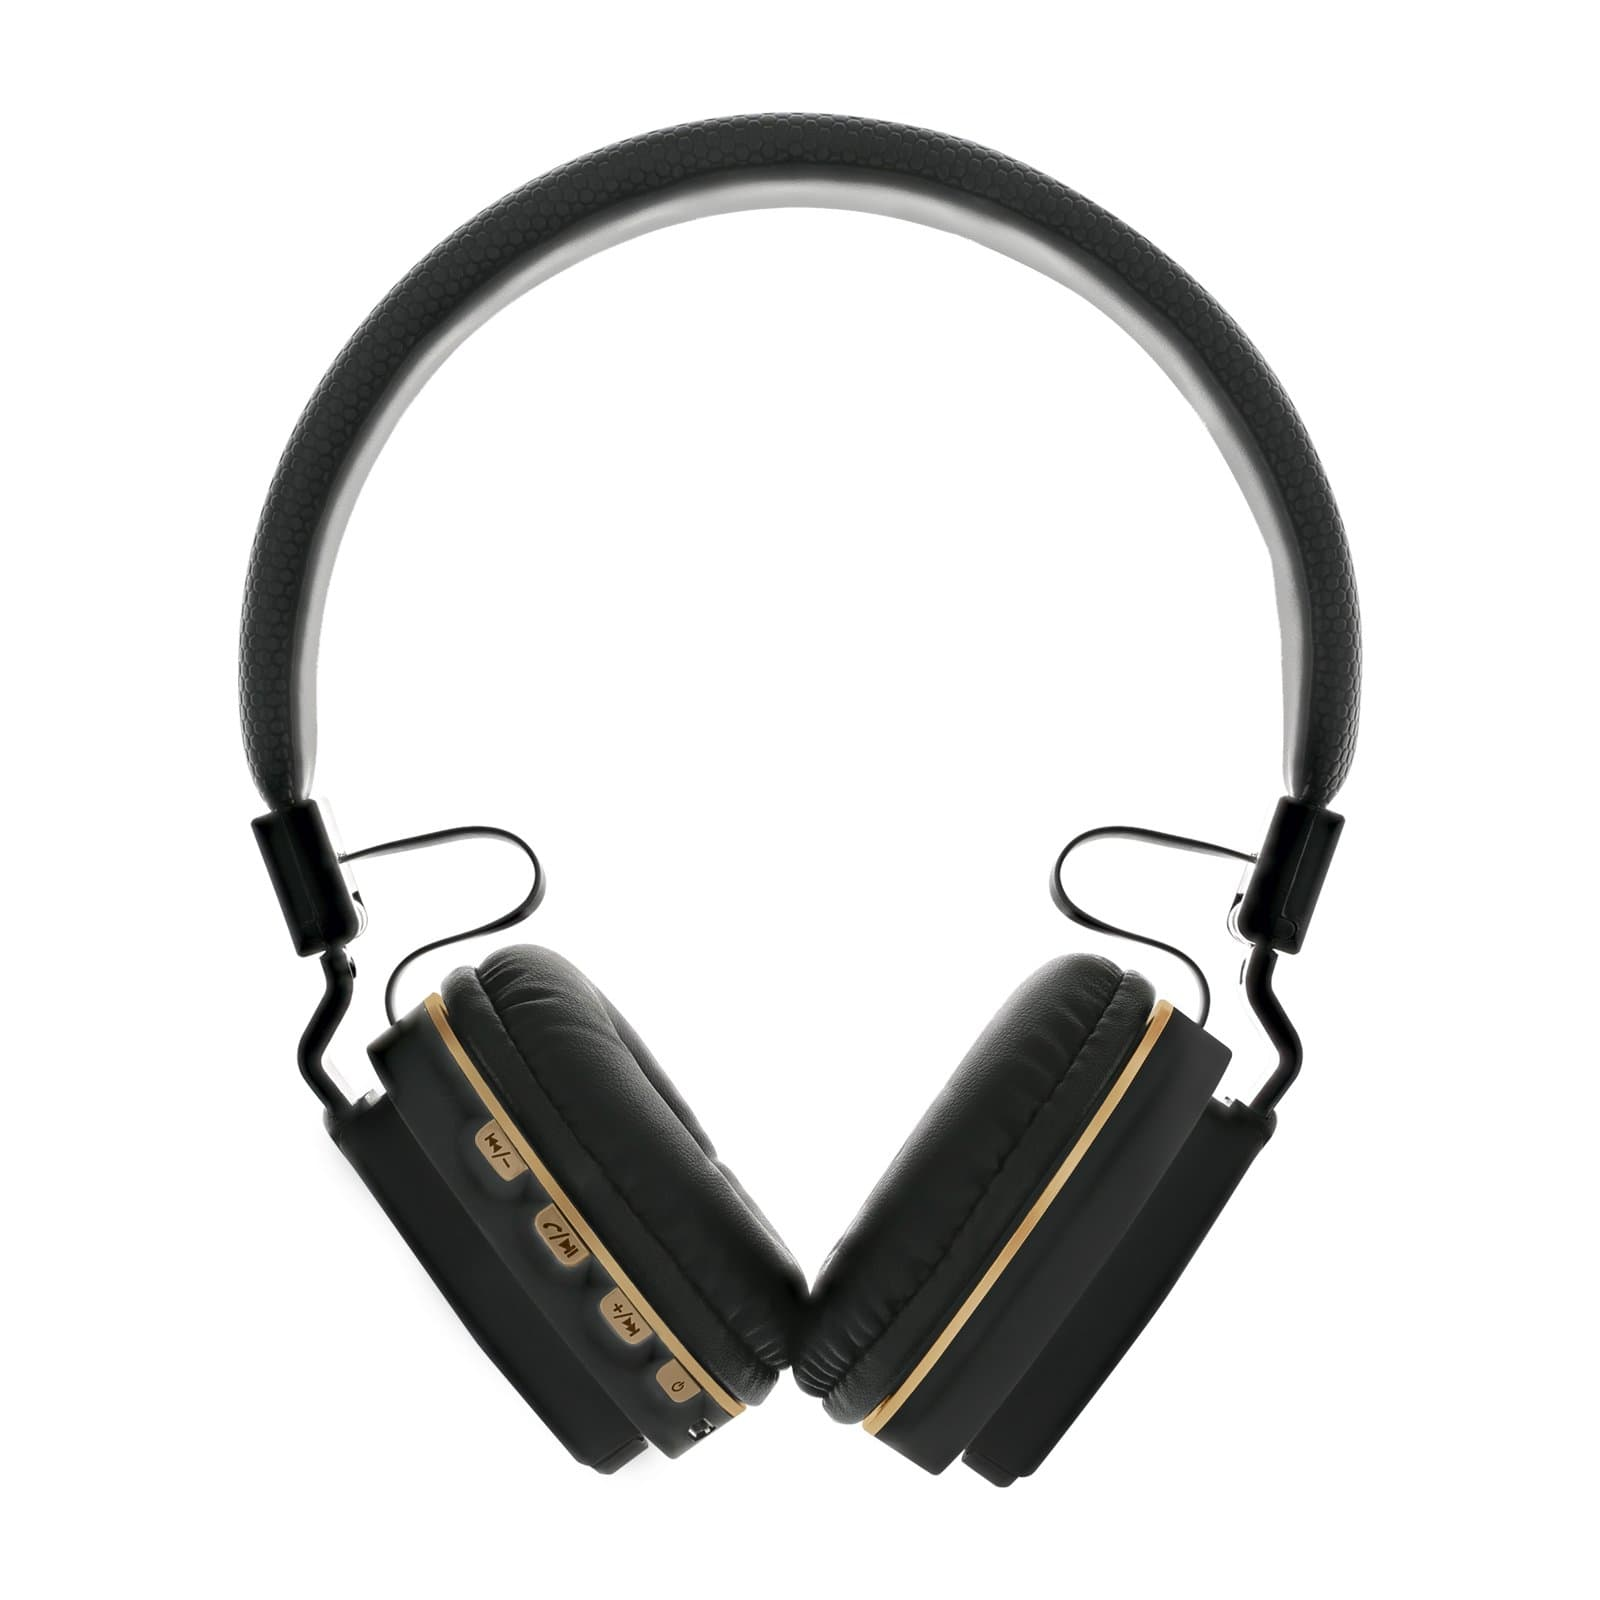 Signature Bluetooth Headphone - HeadArt